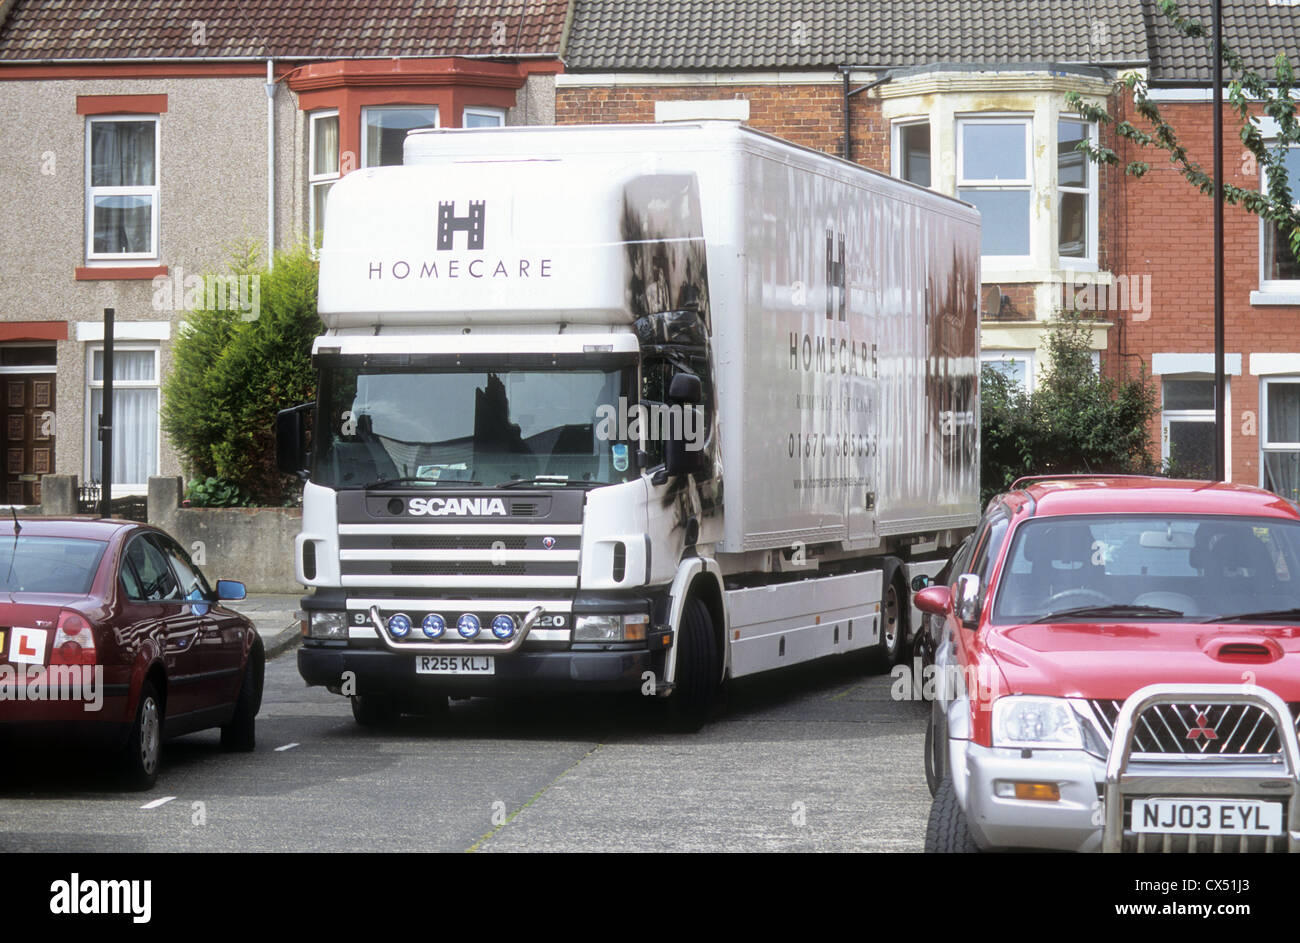 Furniture Removal Truck Parked In A Suburb In North East England